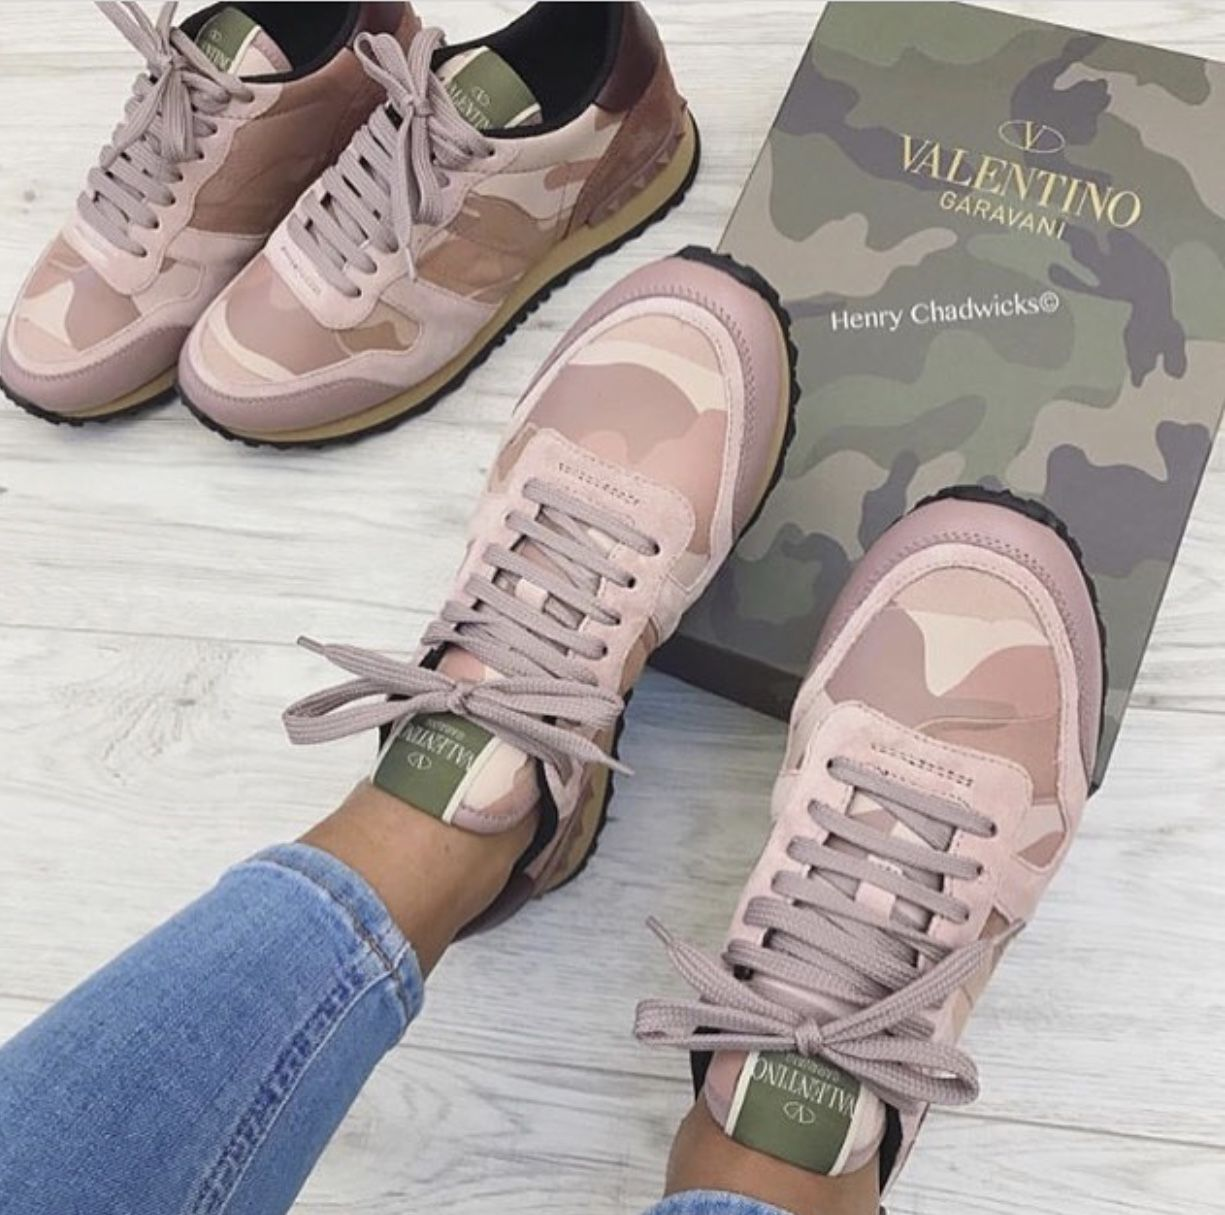 girls valentino trainers Shop Clothing